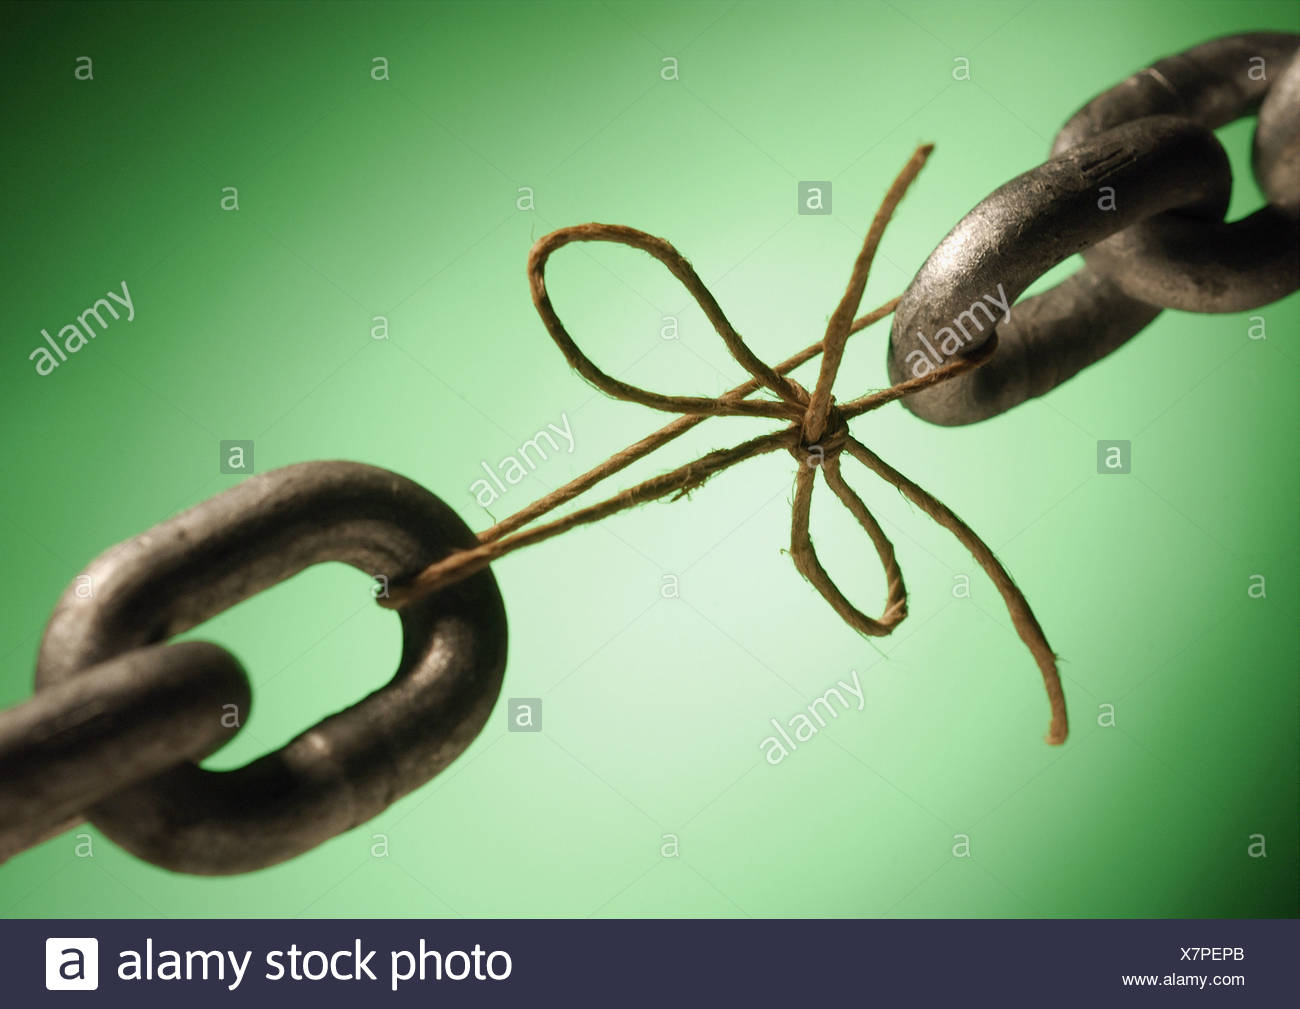 Two ends of a chain linked by string, close-up - Stock Image